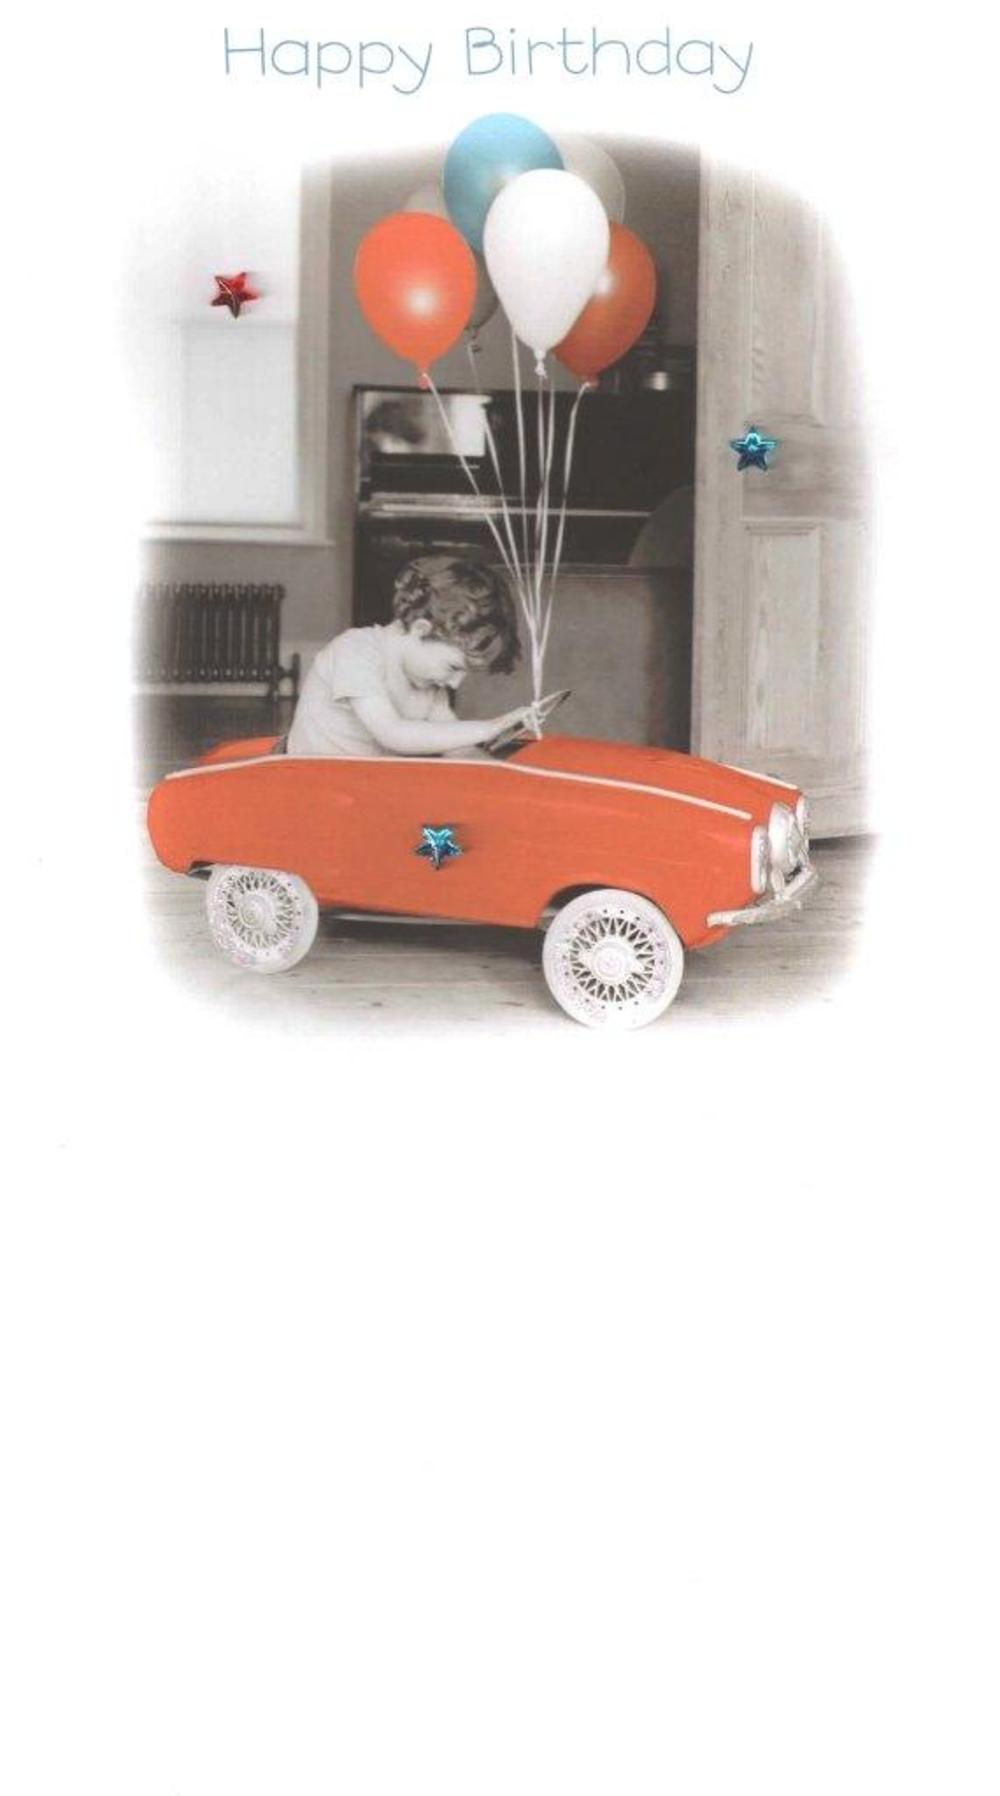 Toy Car Gorgeous Photo Finished Birthday Card